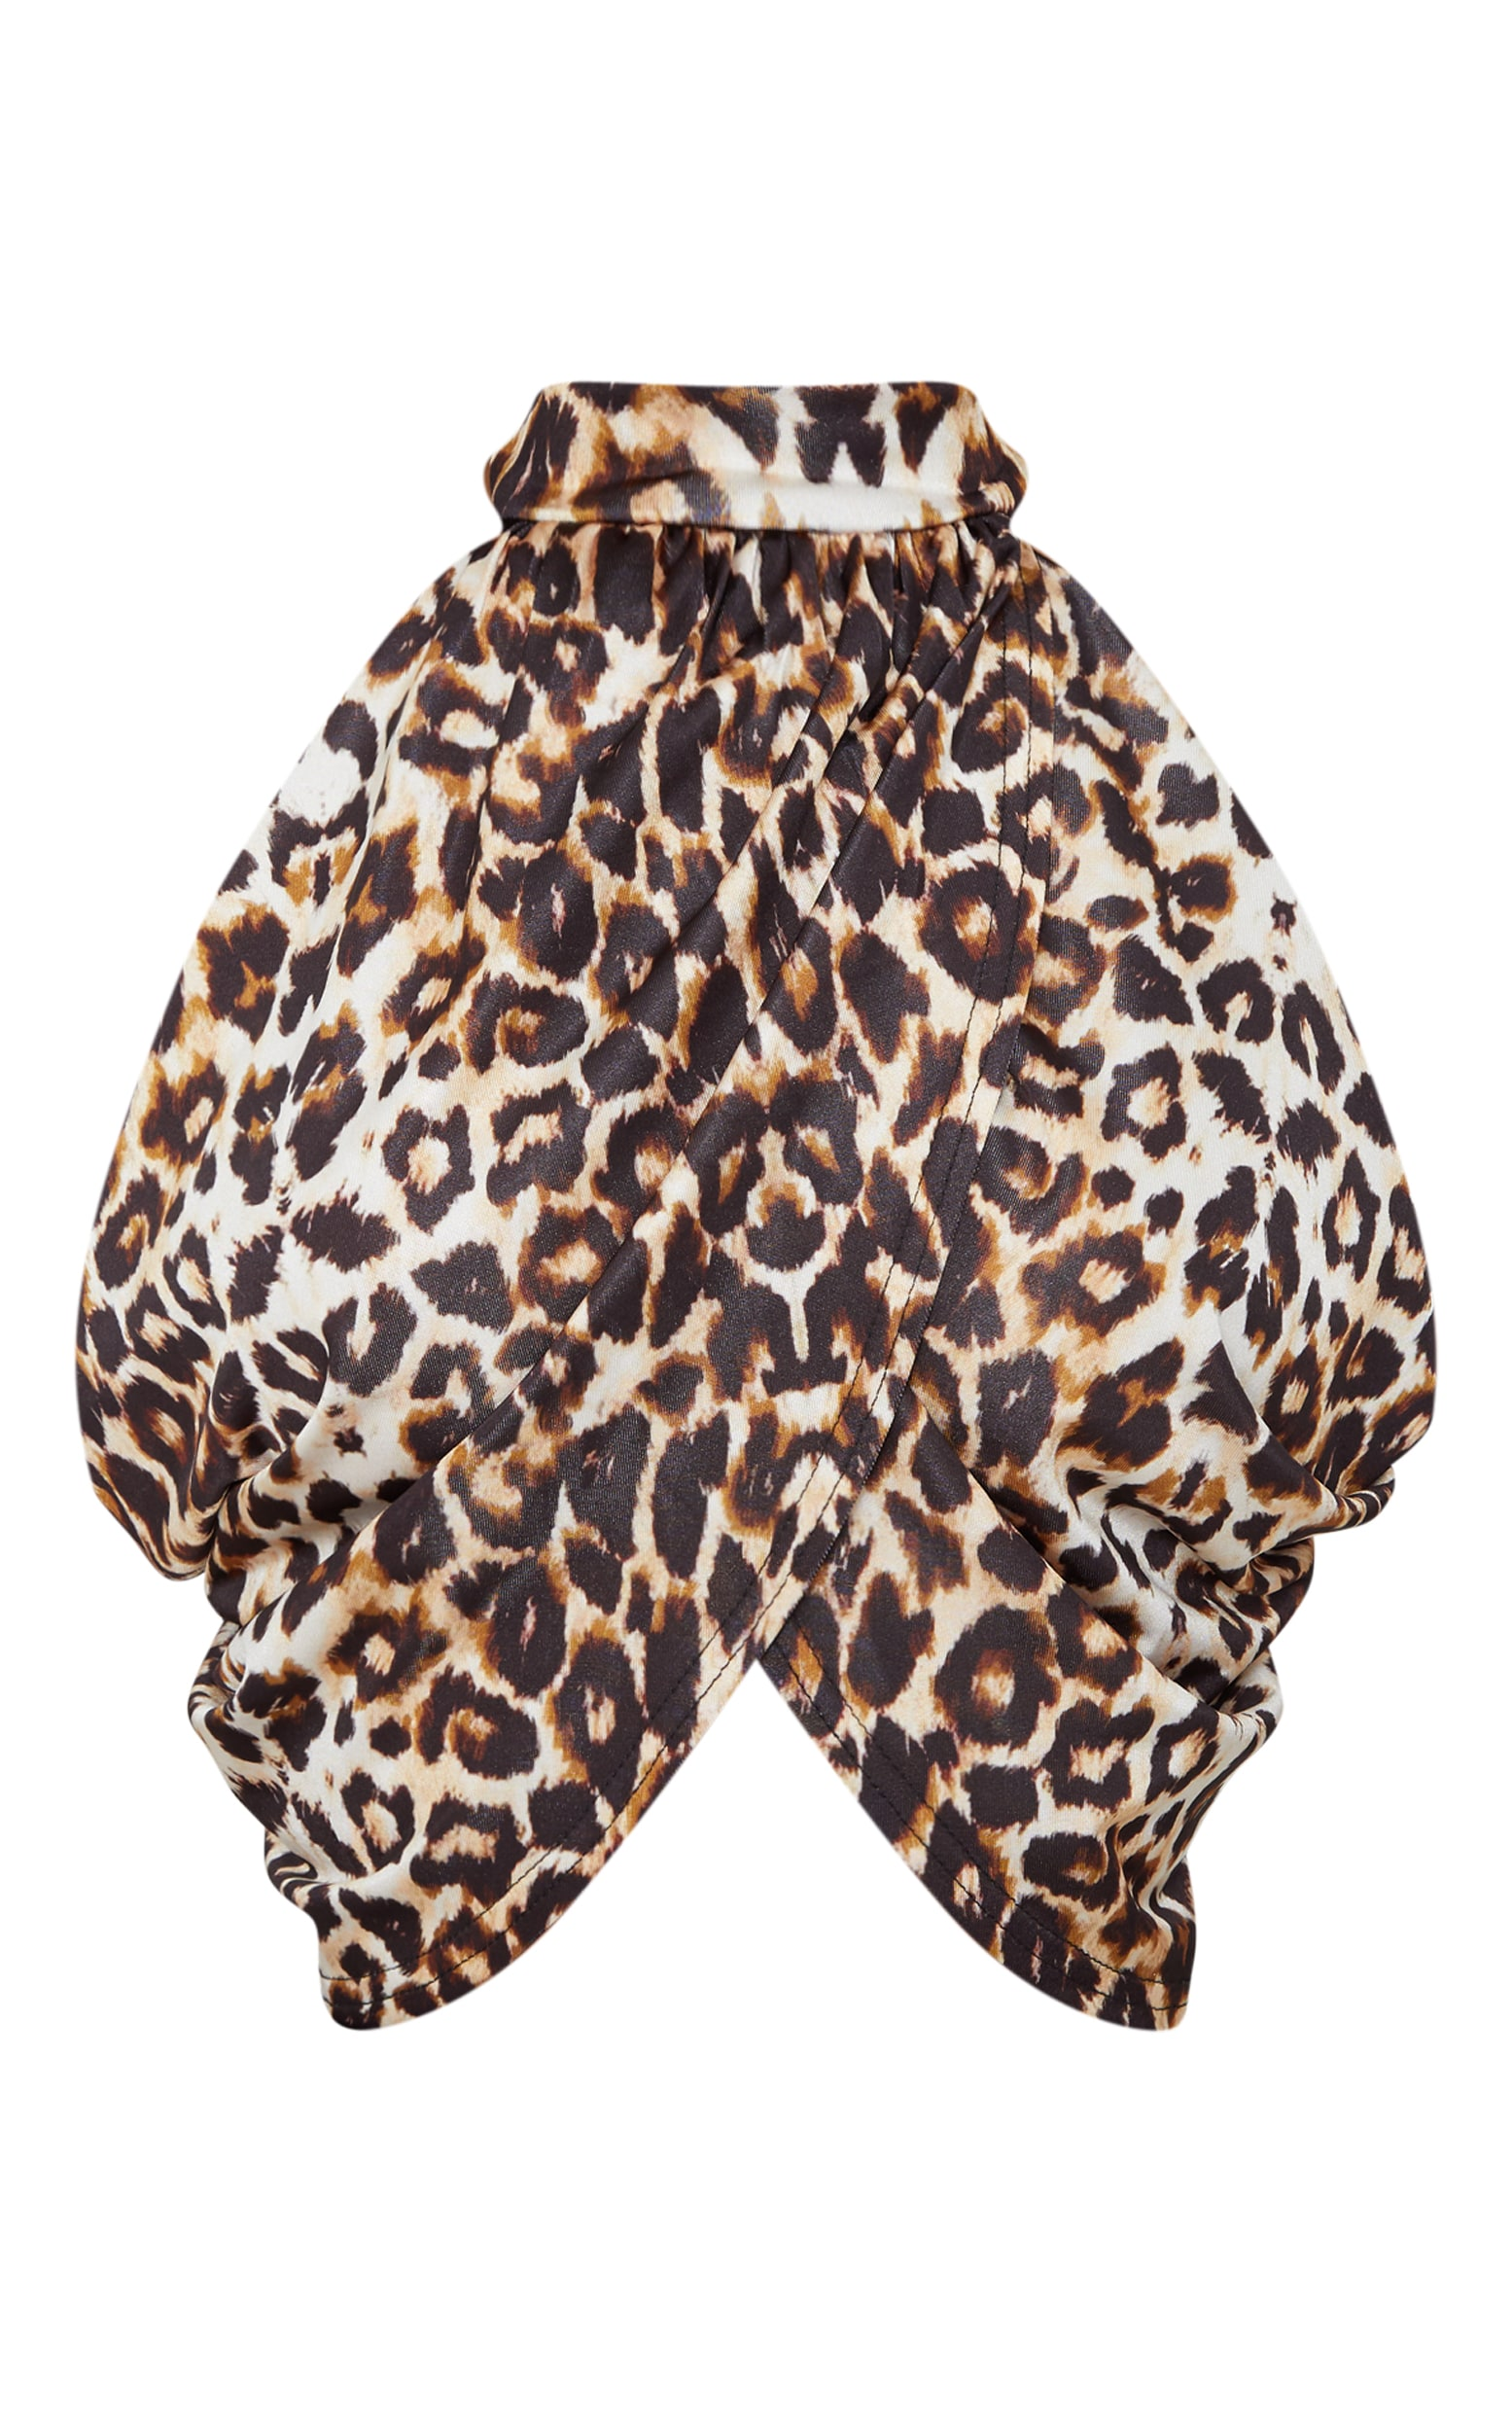 Tan Leopard Neck Wrap Crop Top  2